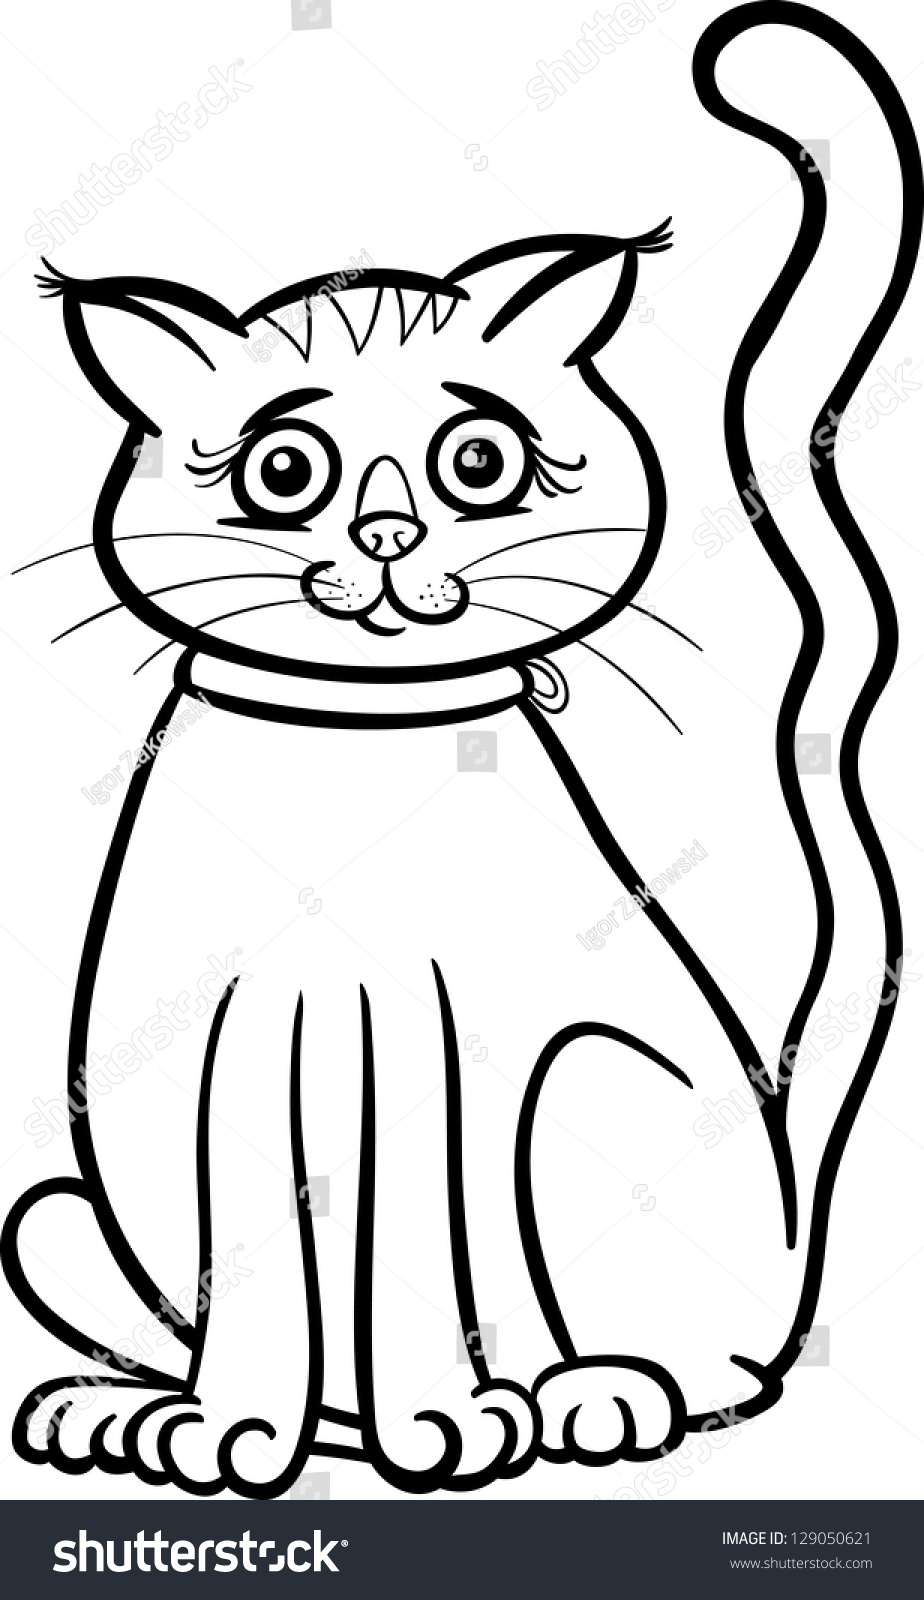 Black And White Cartoon Vector Illustration Of Cute Female Cat Or Kitten For Coloring Book